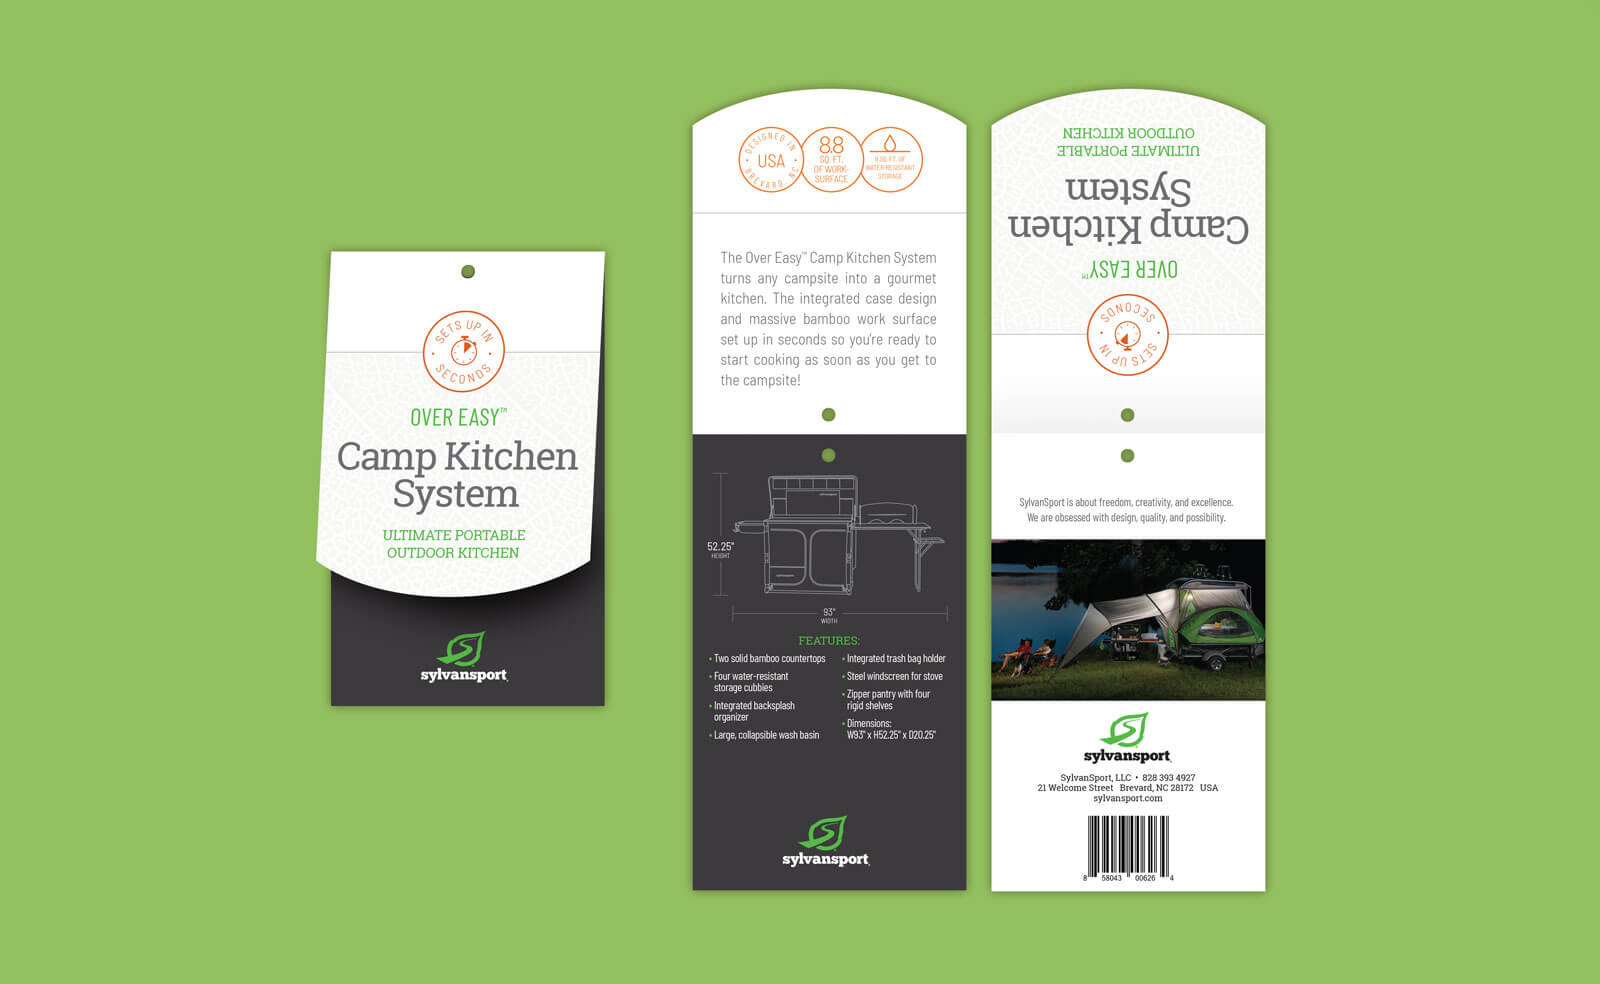 Sylvan Sport folded hangtag for Camp Kitchen with technical drawing. Shown against a green background.